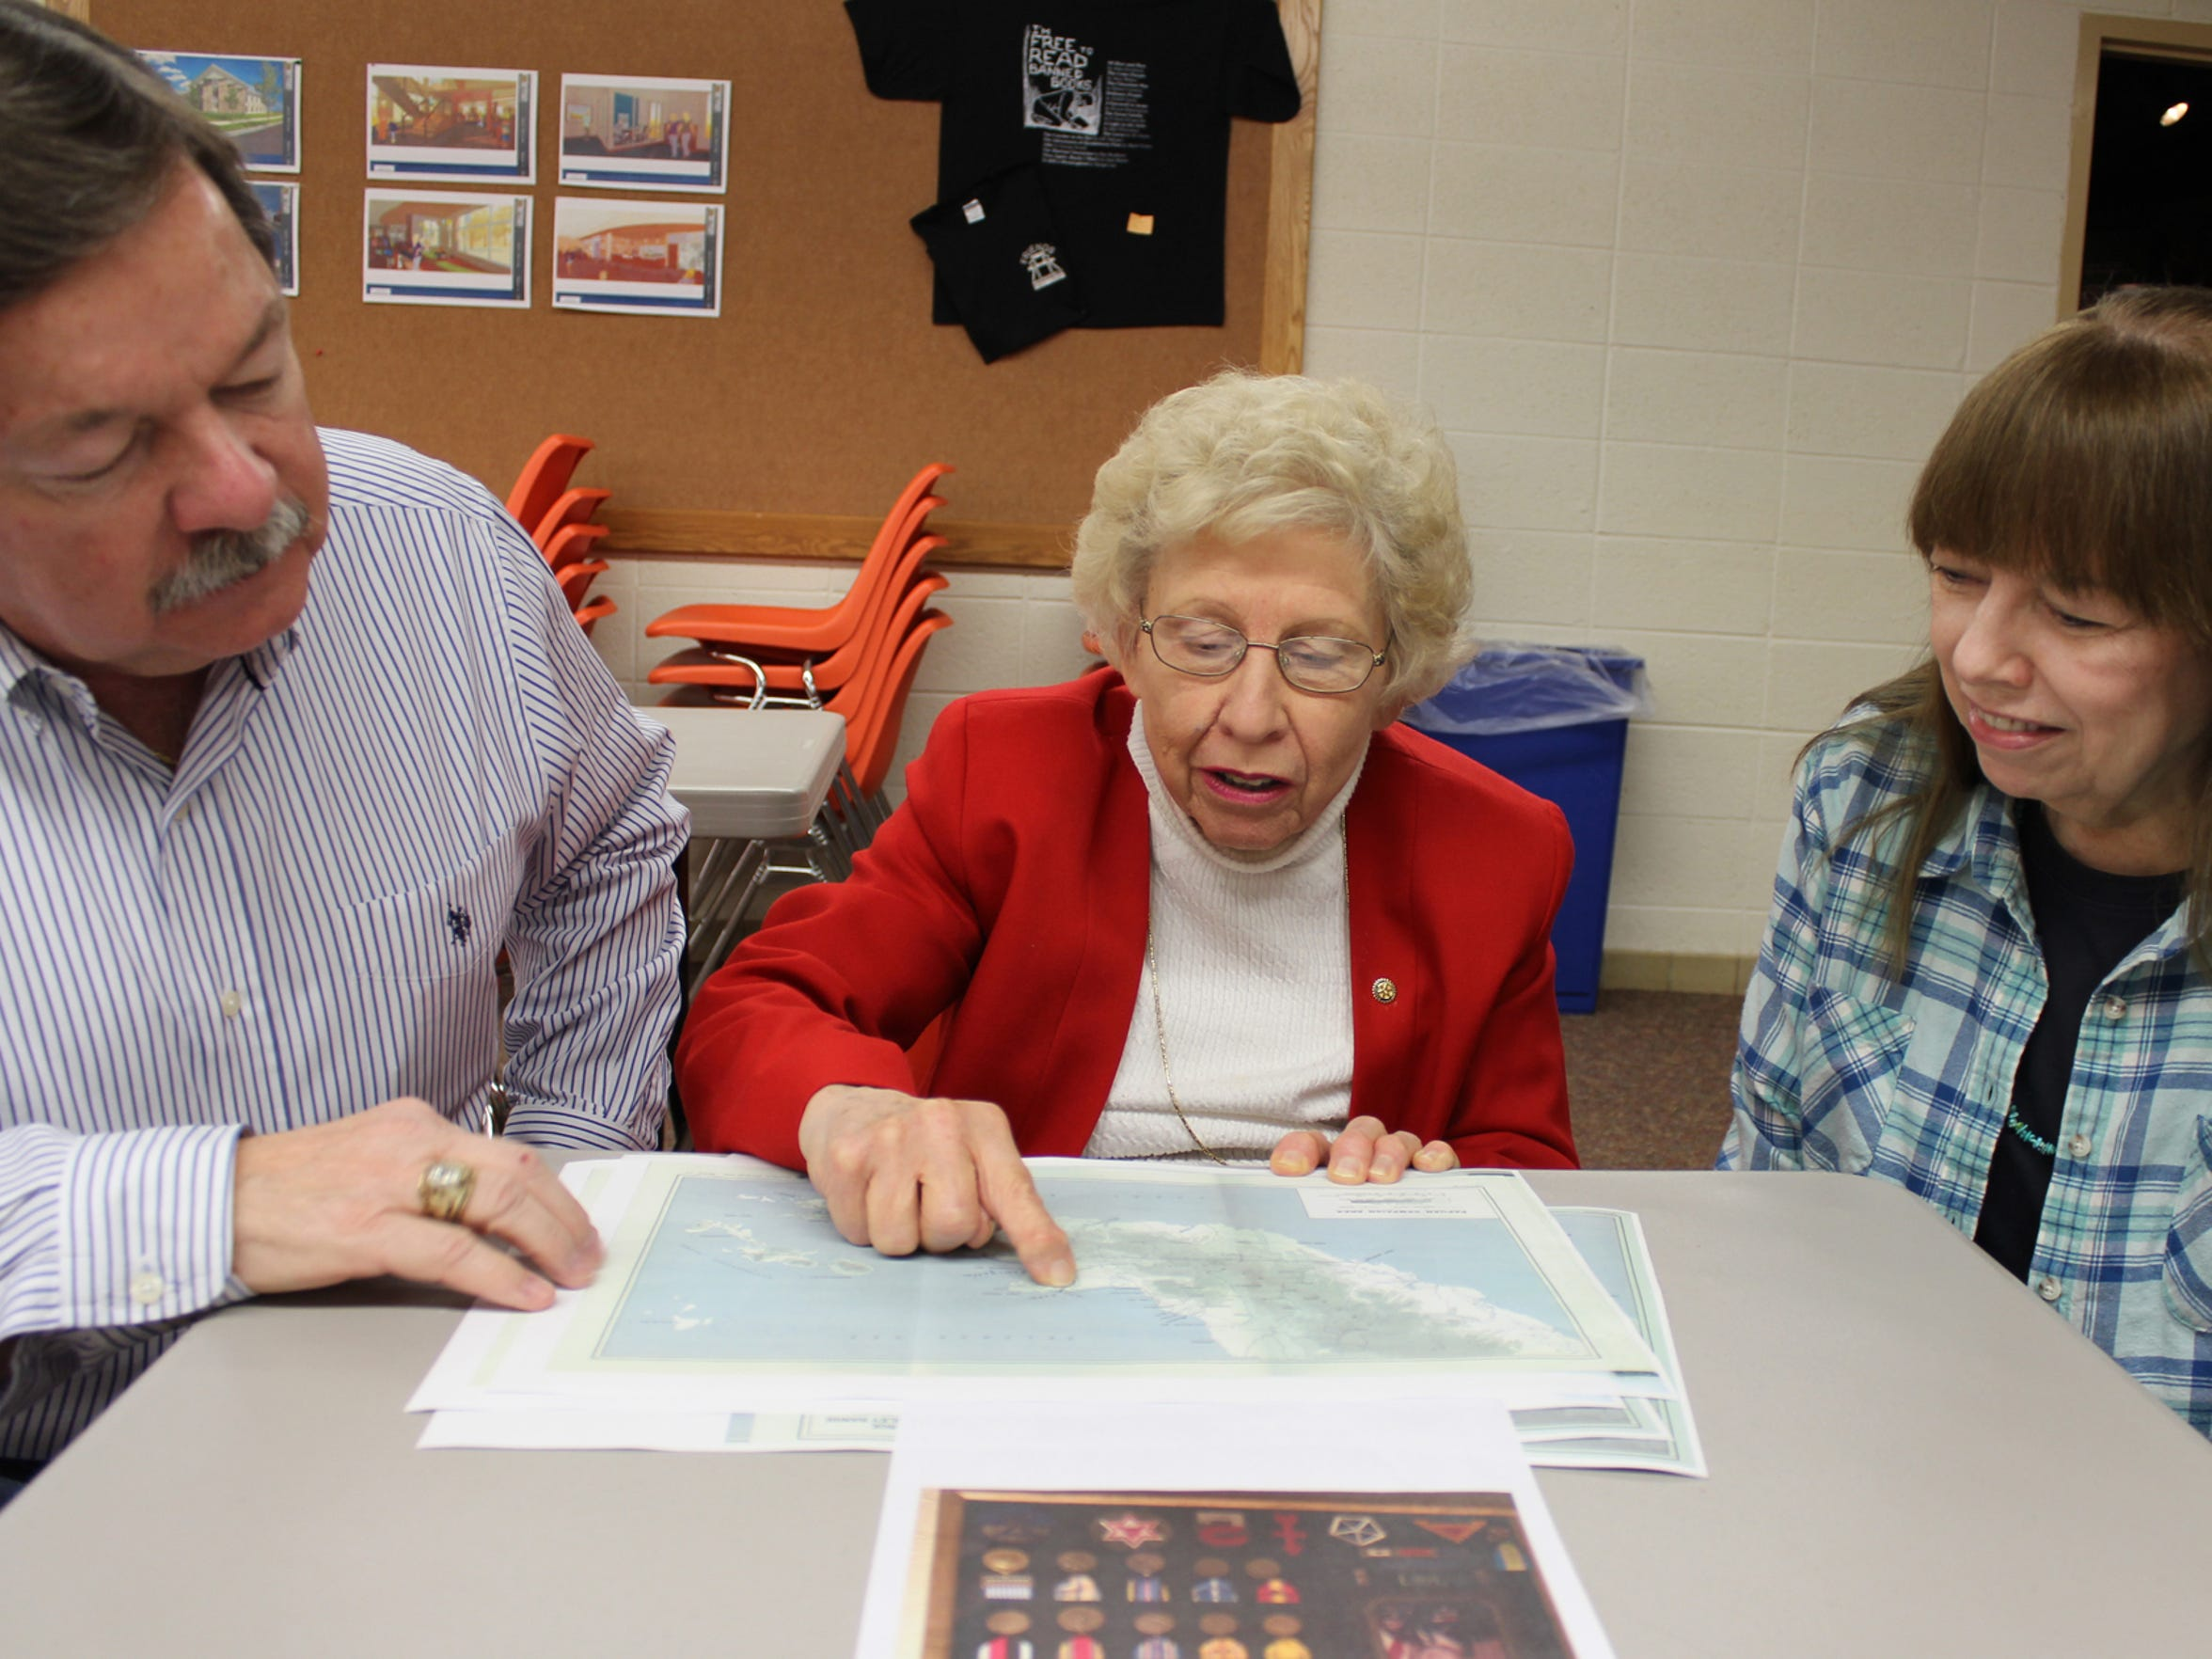 Marshfield Historian Shirley Mook, center, shows Jerry Seidl and Carol Seidl (both of Austin, Texas) where their father was wounded in a battle on the island of Papua during a battle in World War II, in the basement of the Marshfield Public Library Oct. 19.